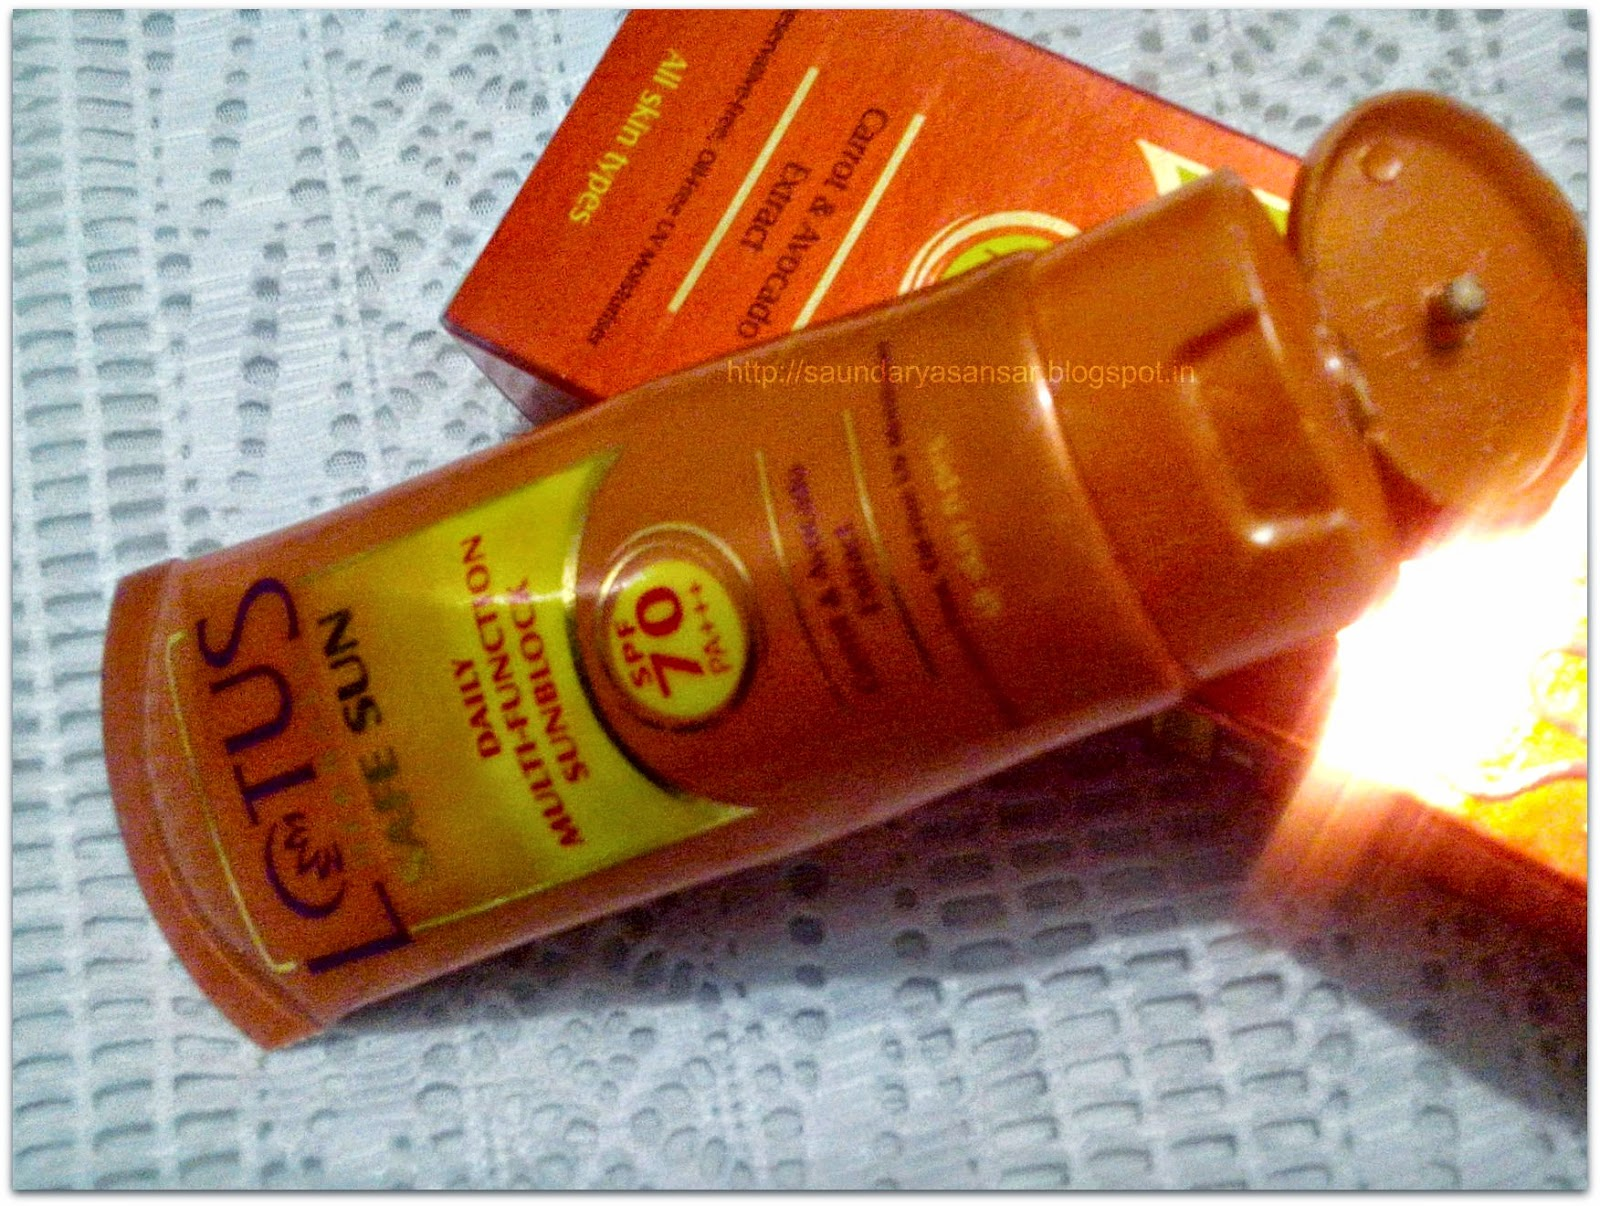 LOTUS Safe Sun- Daily Multifunction Sunblock- spf 70 PA+++ Tube Review